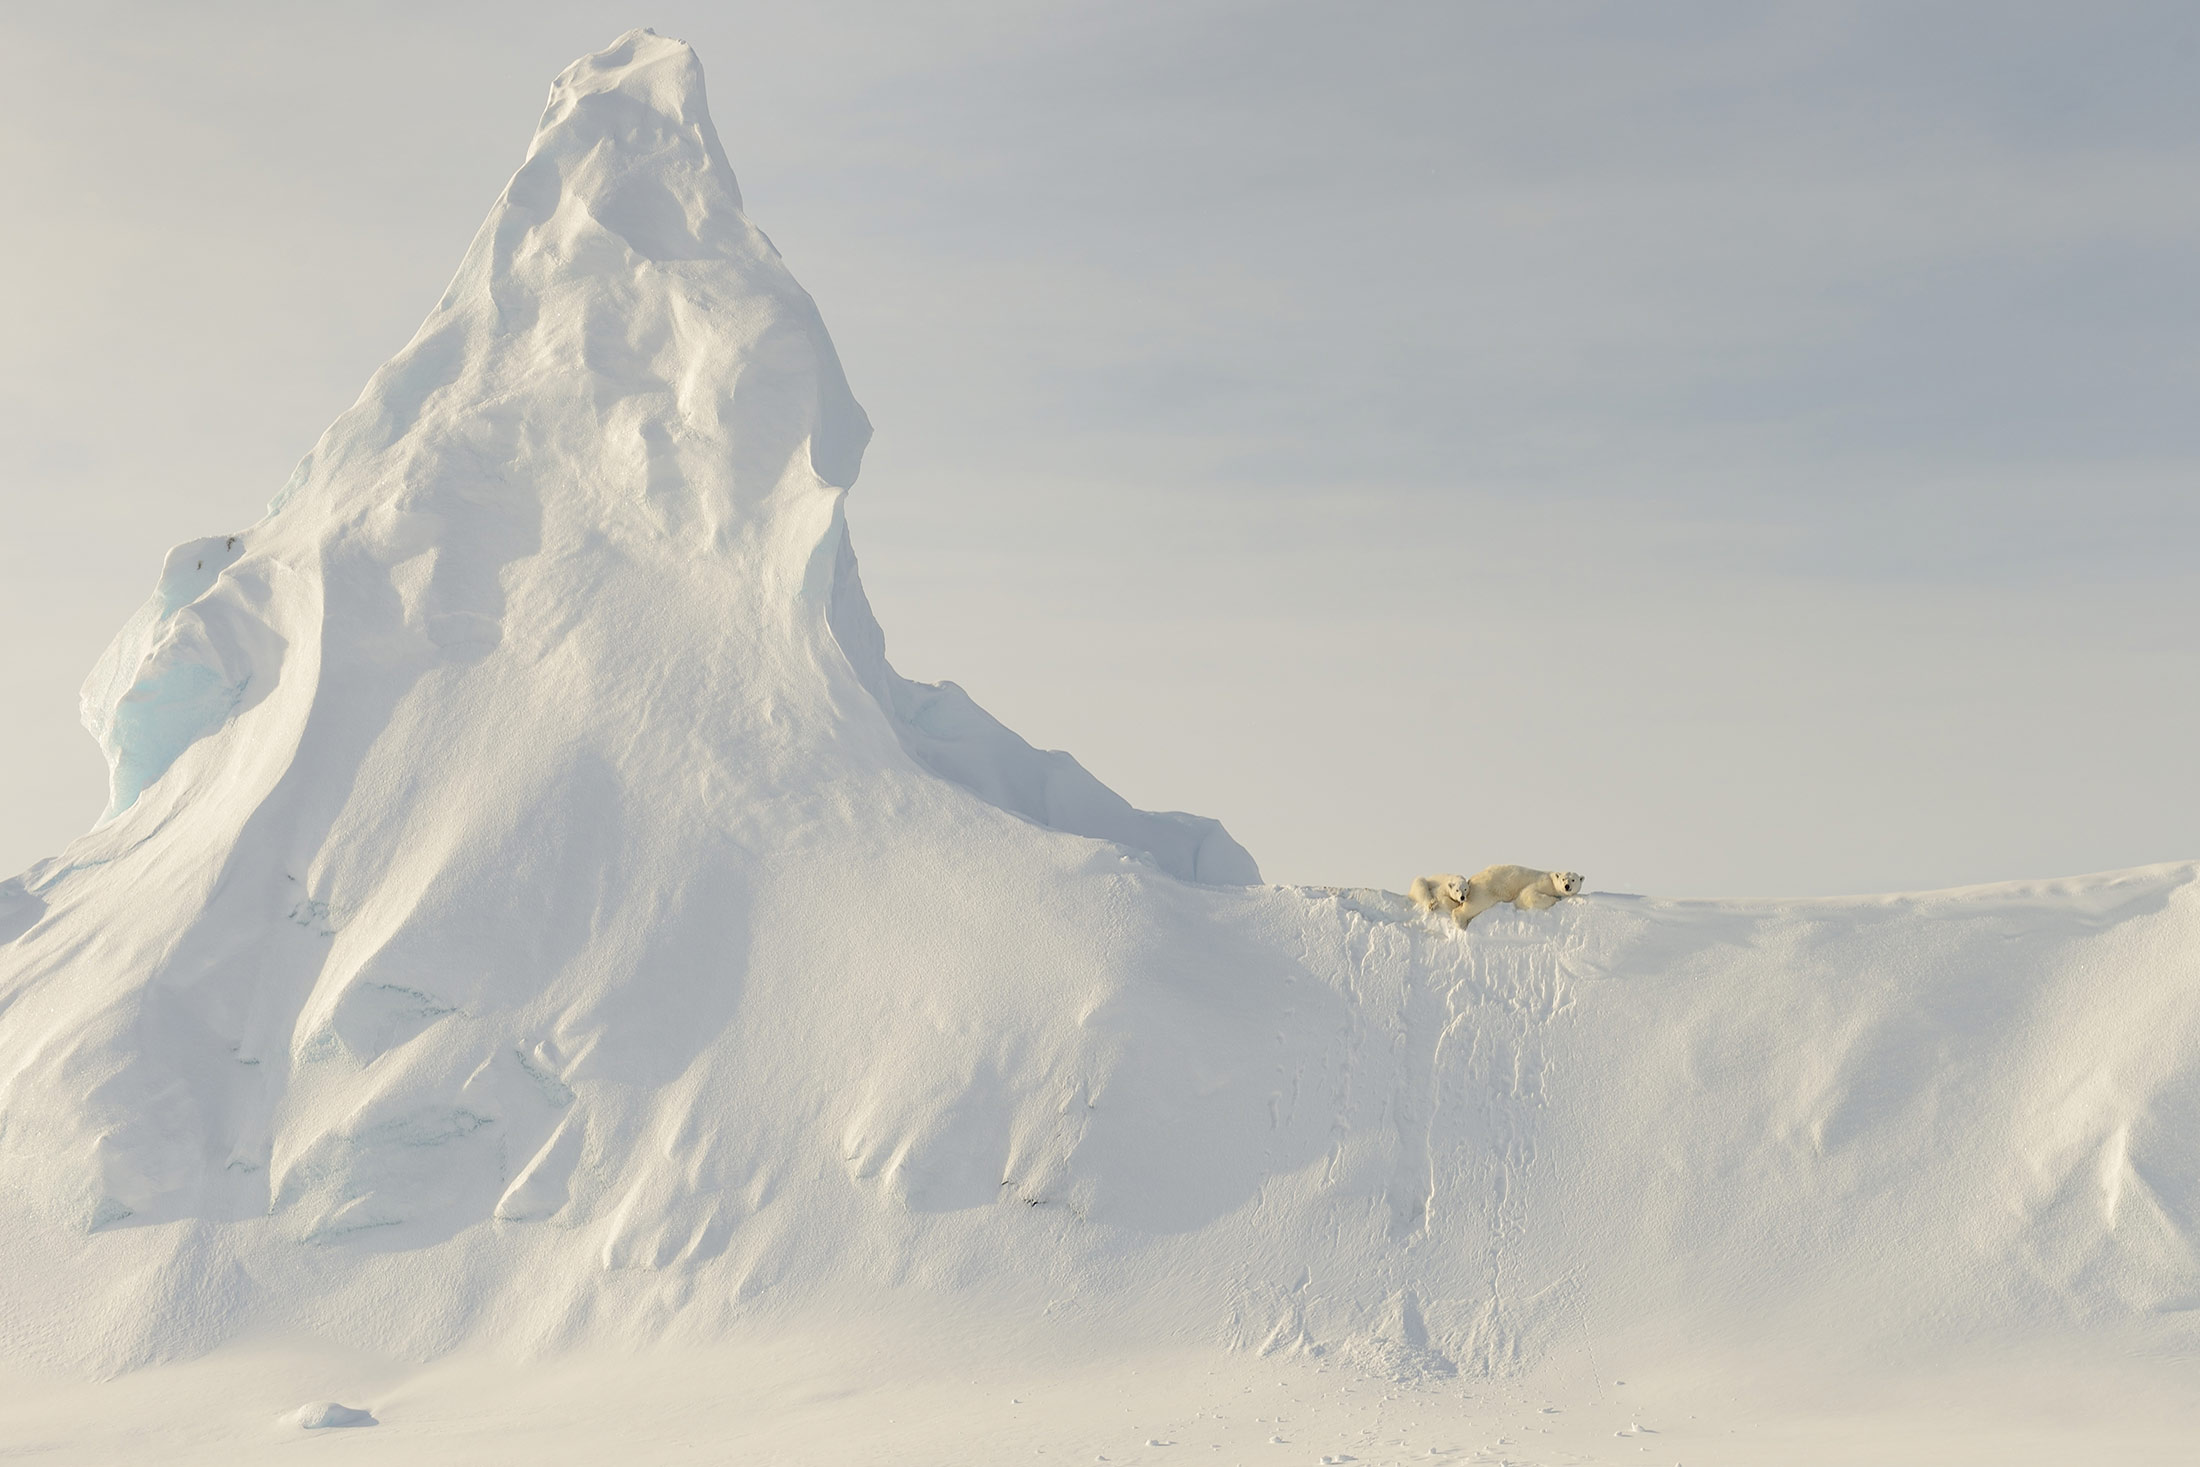 Nature Honorable Mention: Bears on a Berg